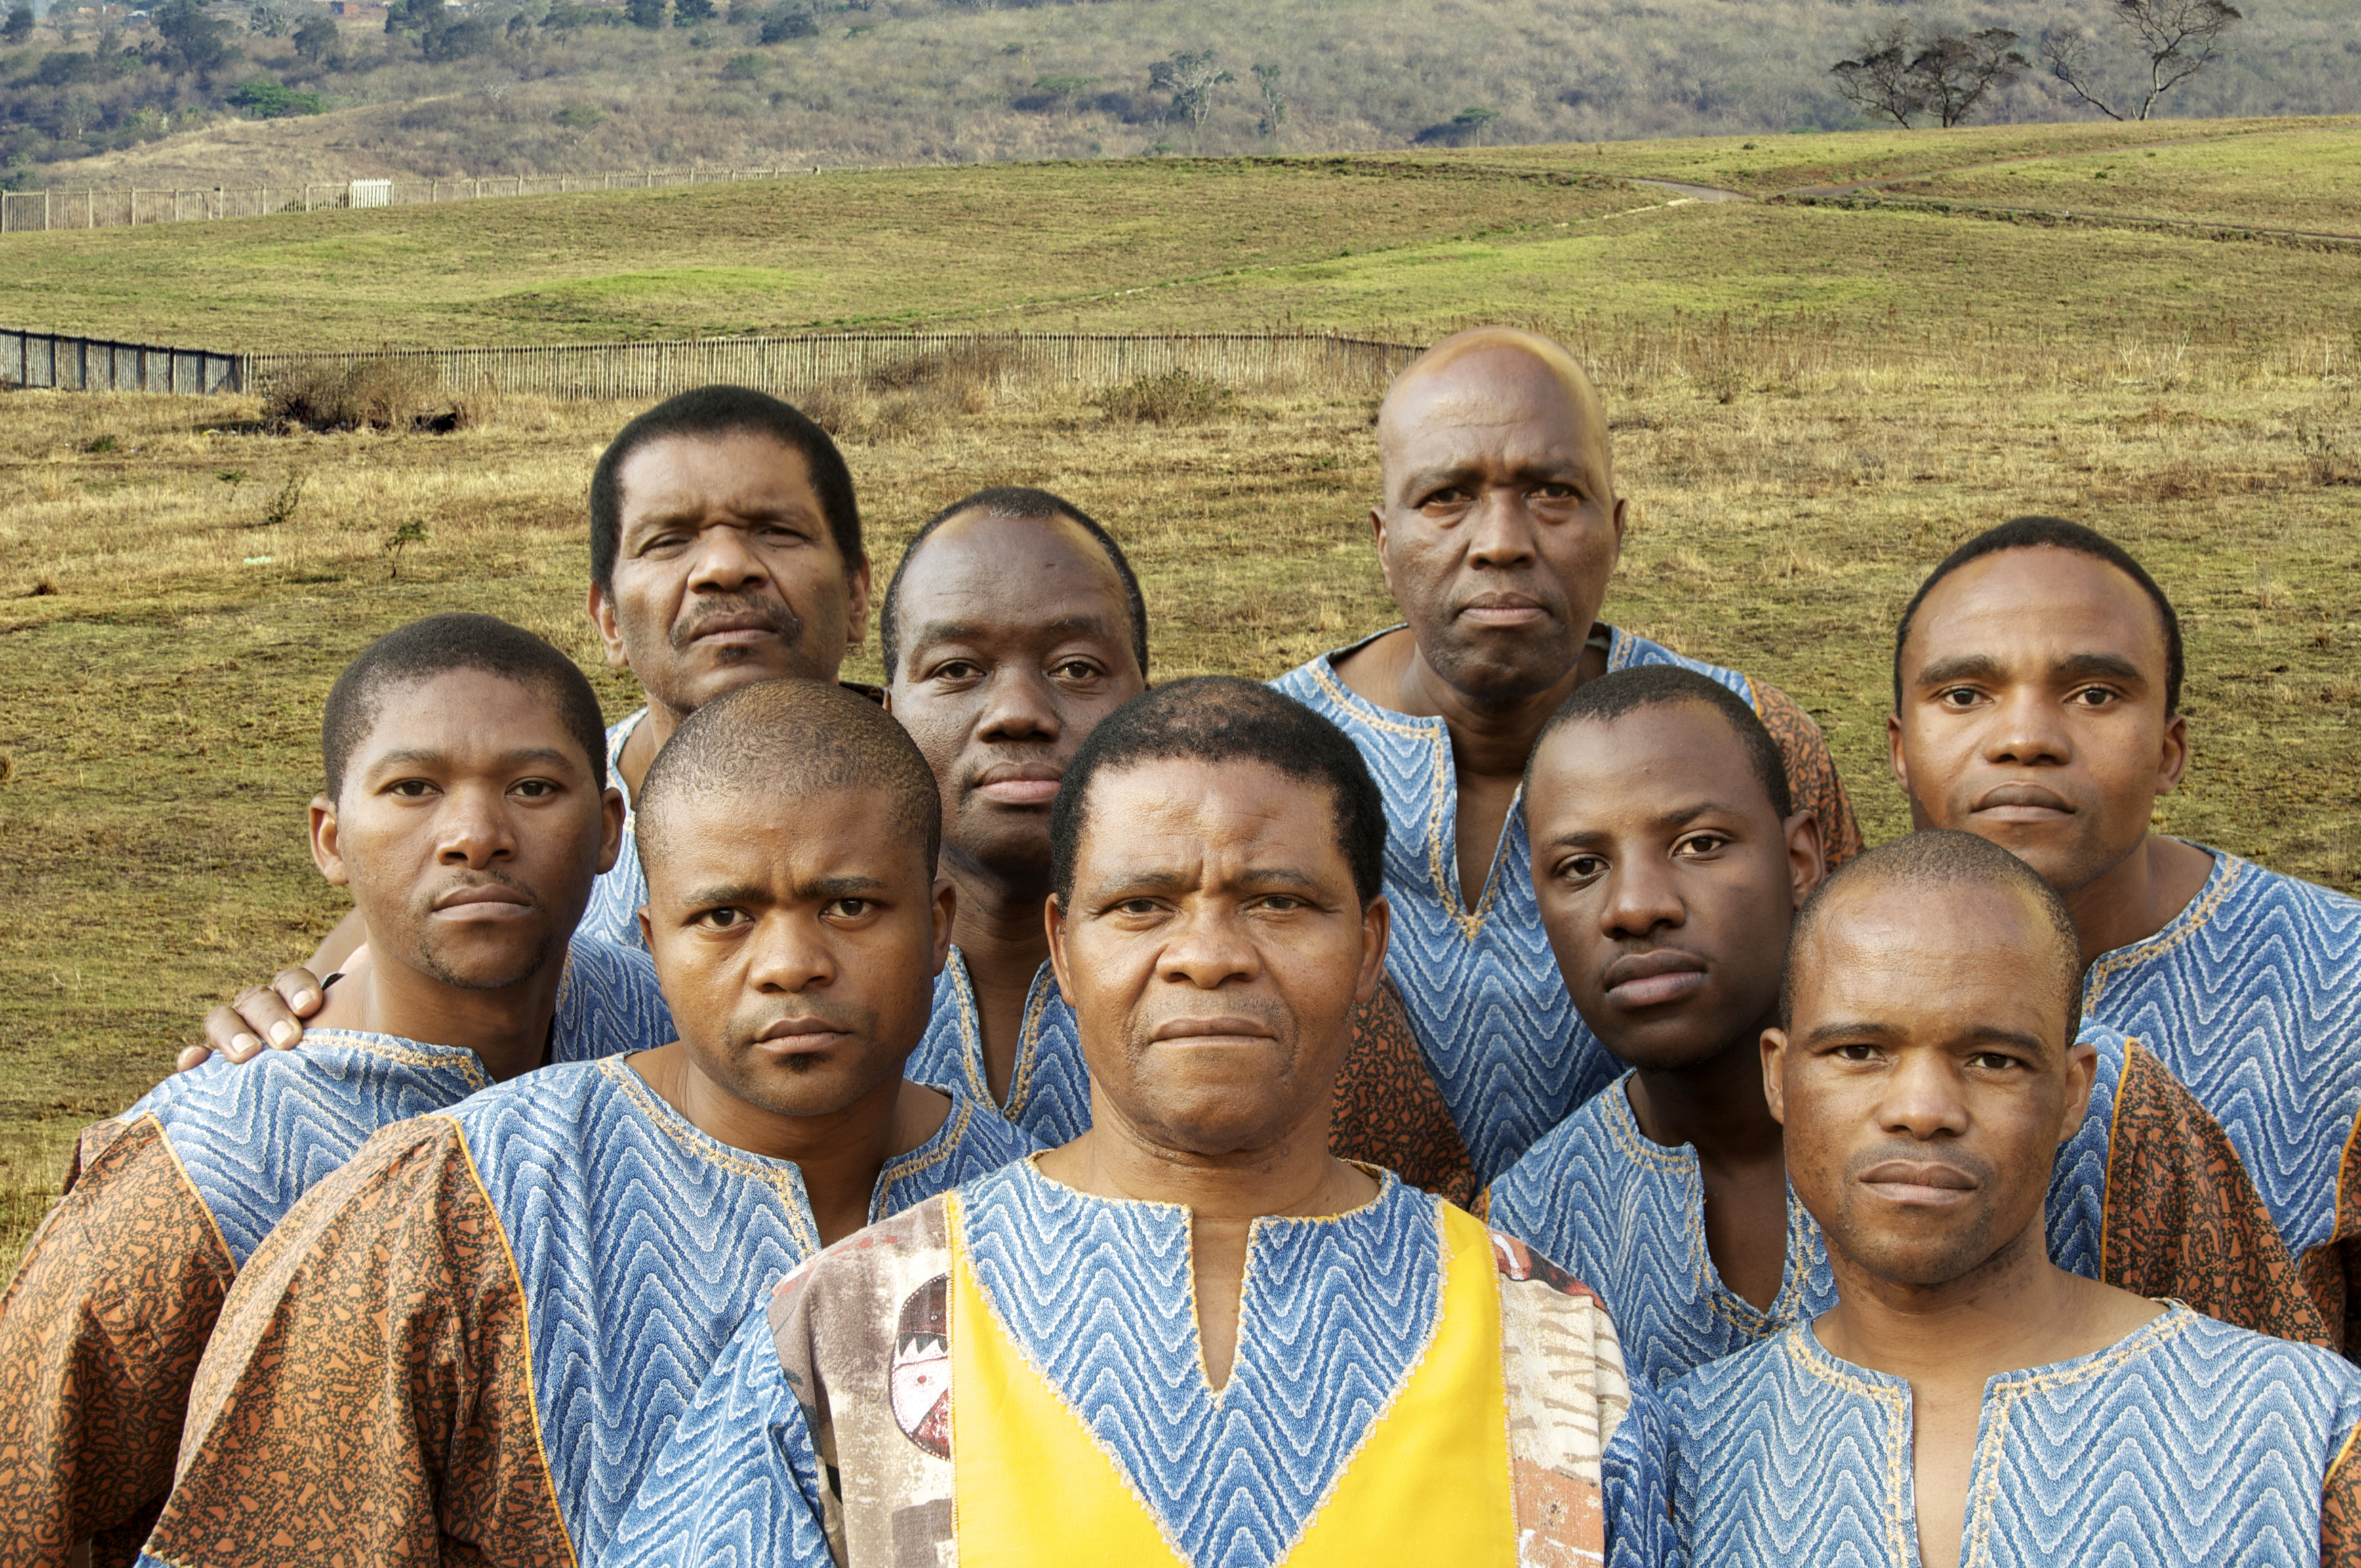 ladysmith christian personals Former ladysmith black mambazo member ben shabalala was killed june 16 in a suburb of durban, south africa, under unknown circumstances he was in his late 40s.